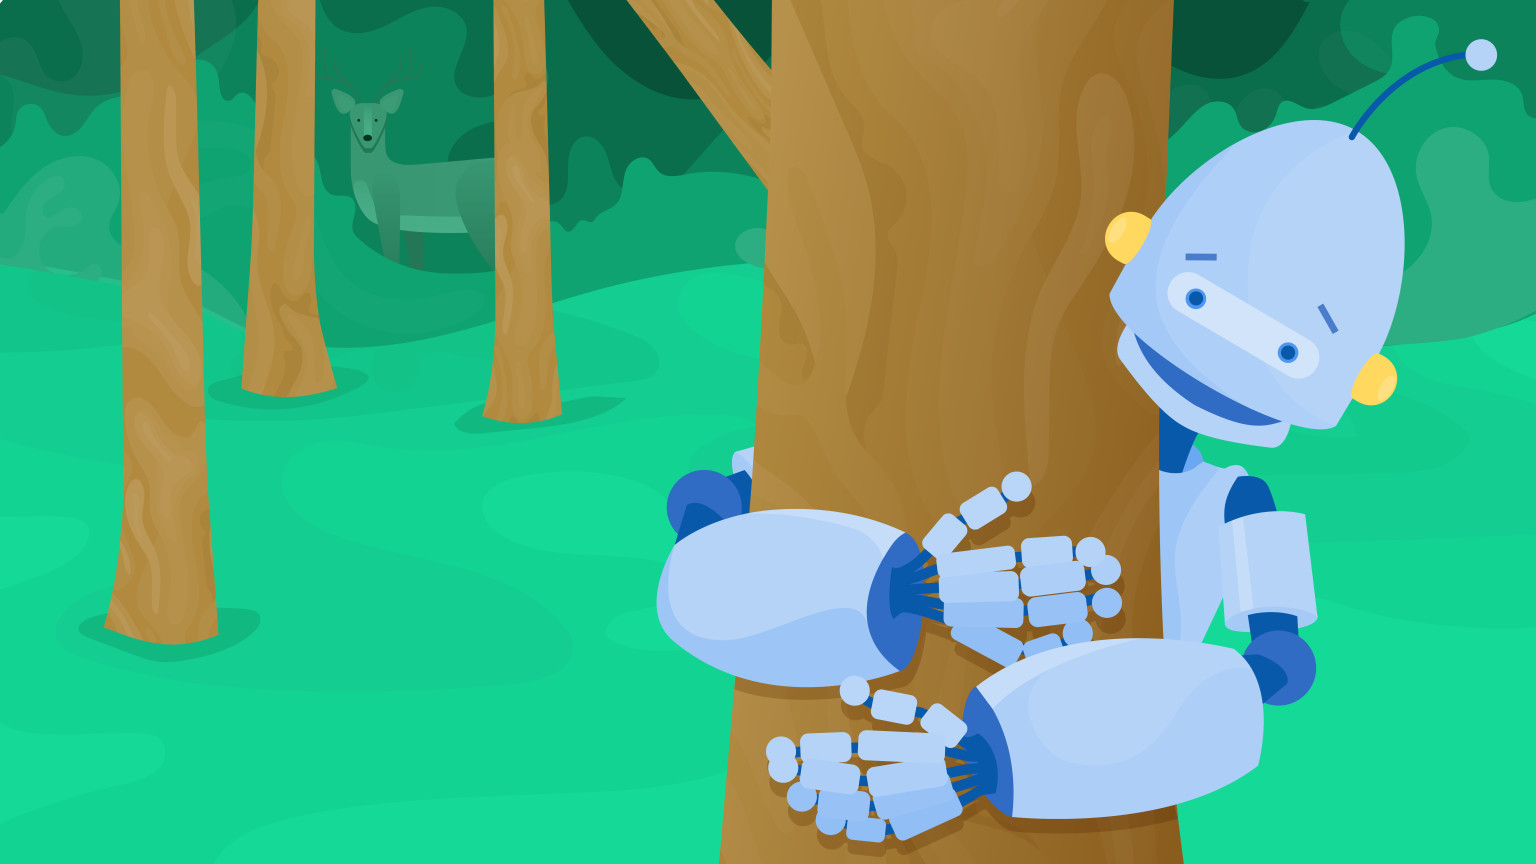 Image of a robot hugging a tree with a cute deer in the background.